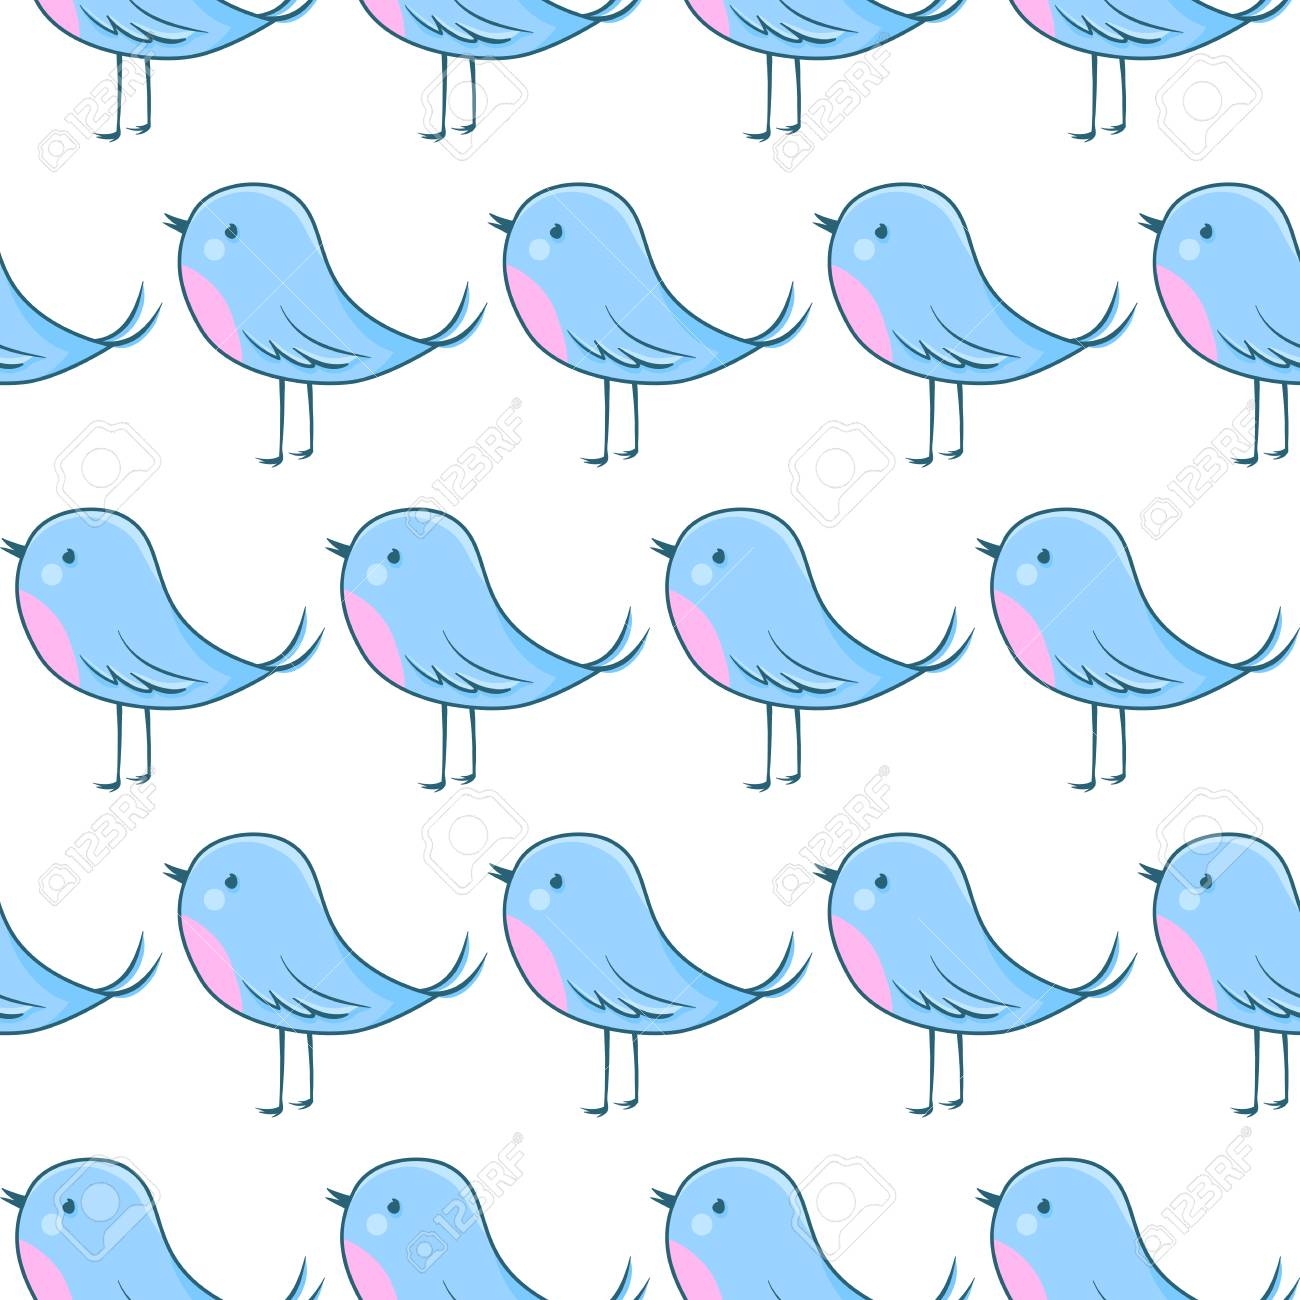 Seamless Pattern With Cartoon Birds Kids Background For Wrapping